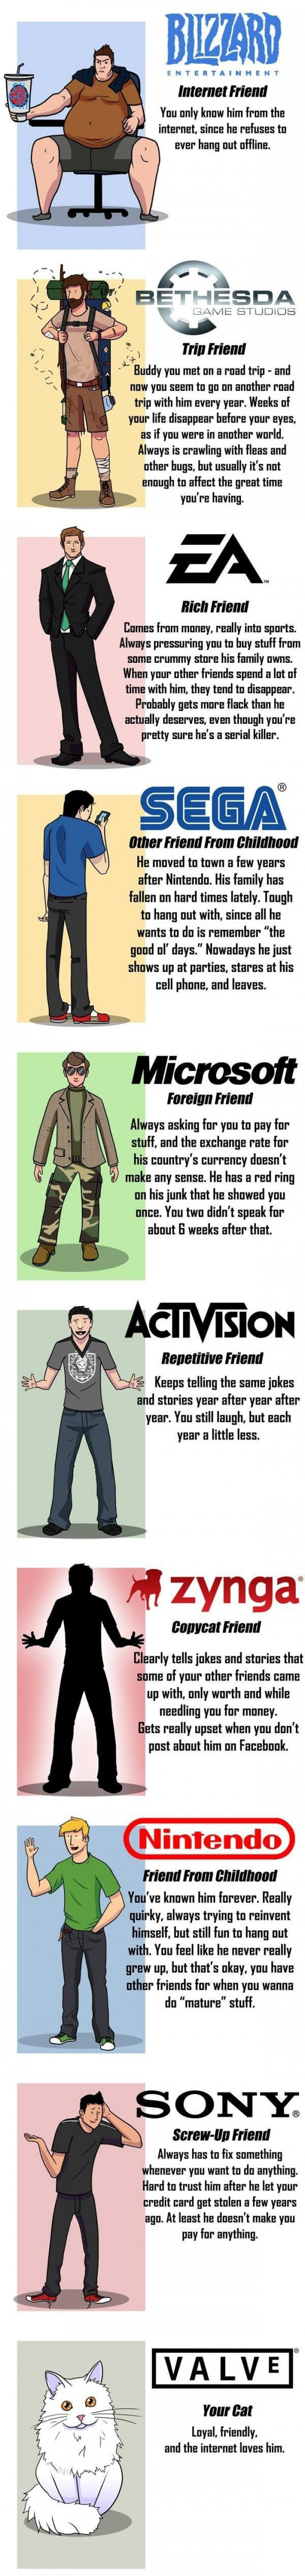 Your 7 Friends Compared To Game Developers